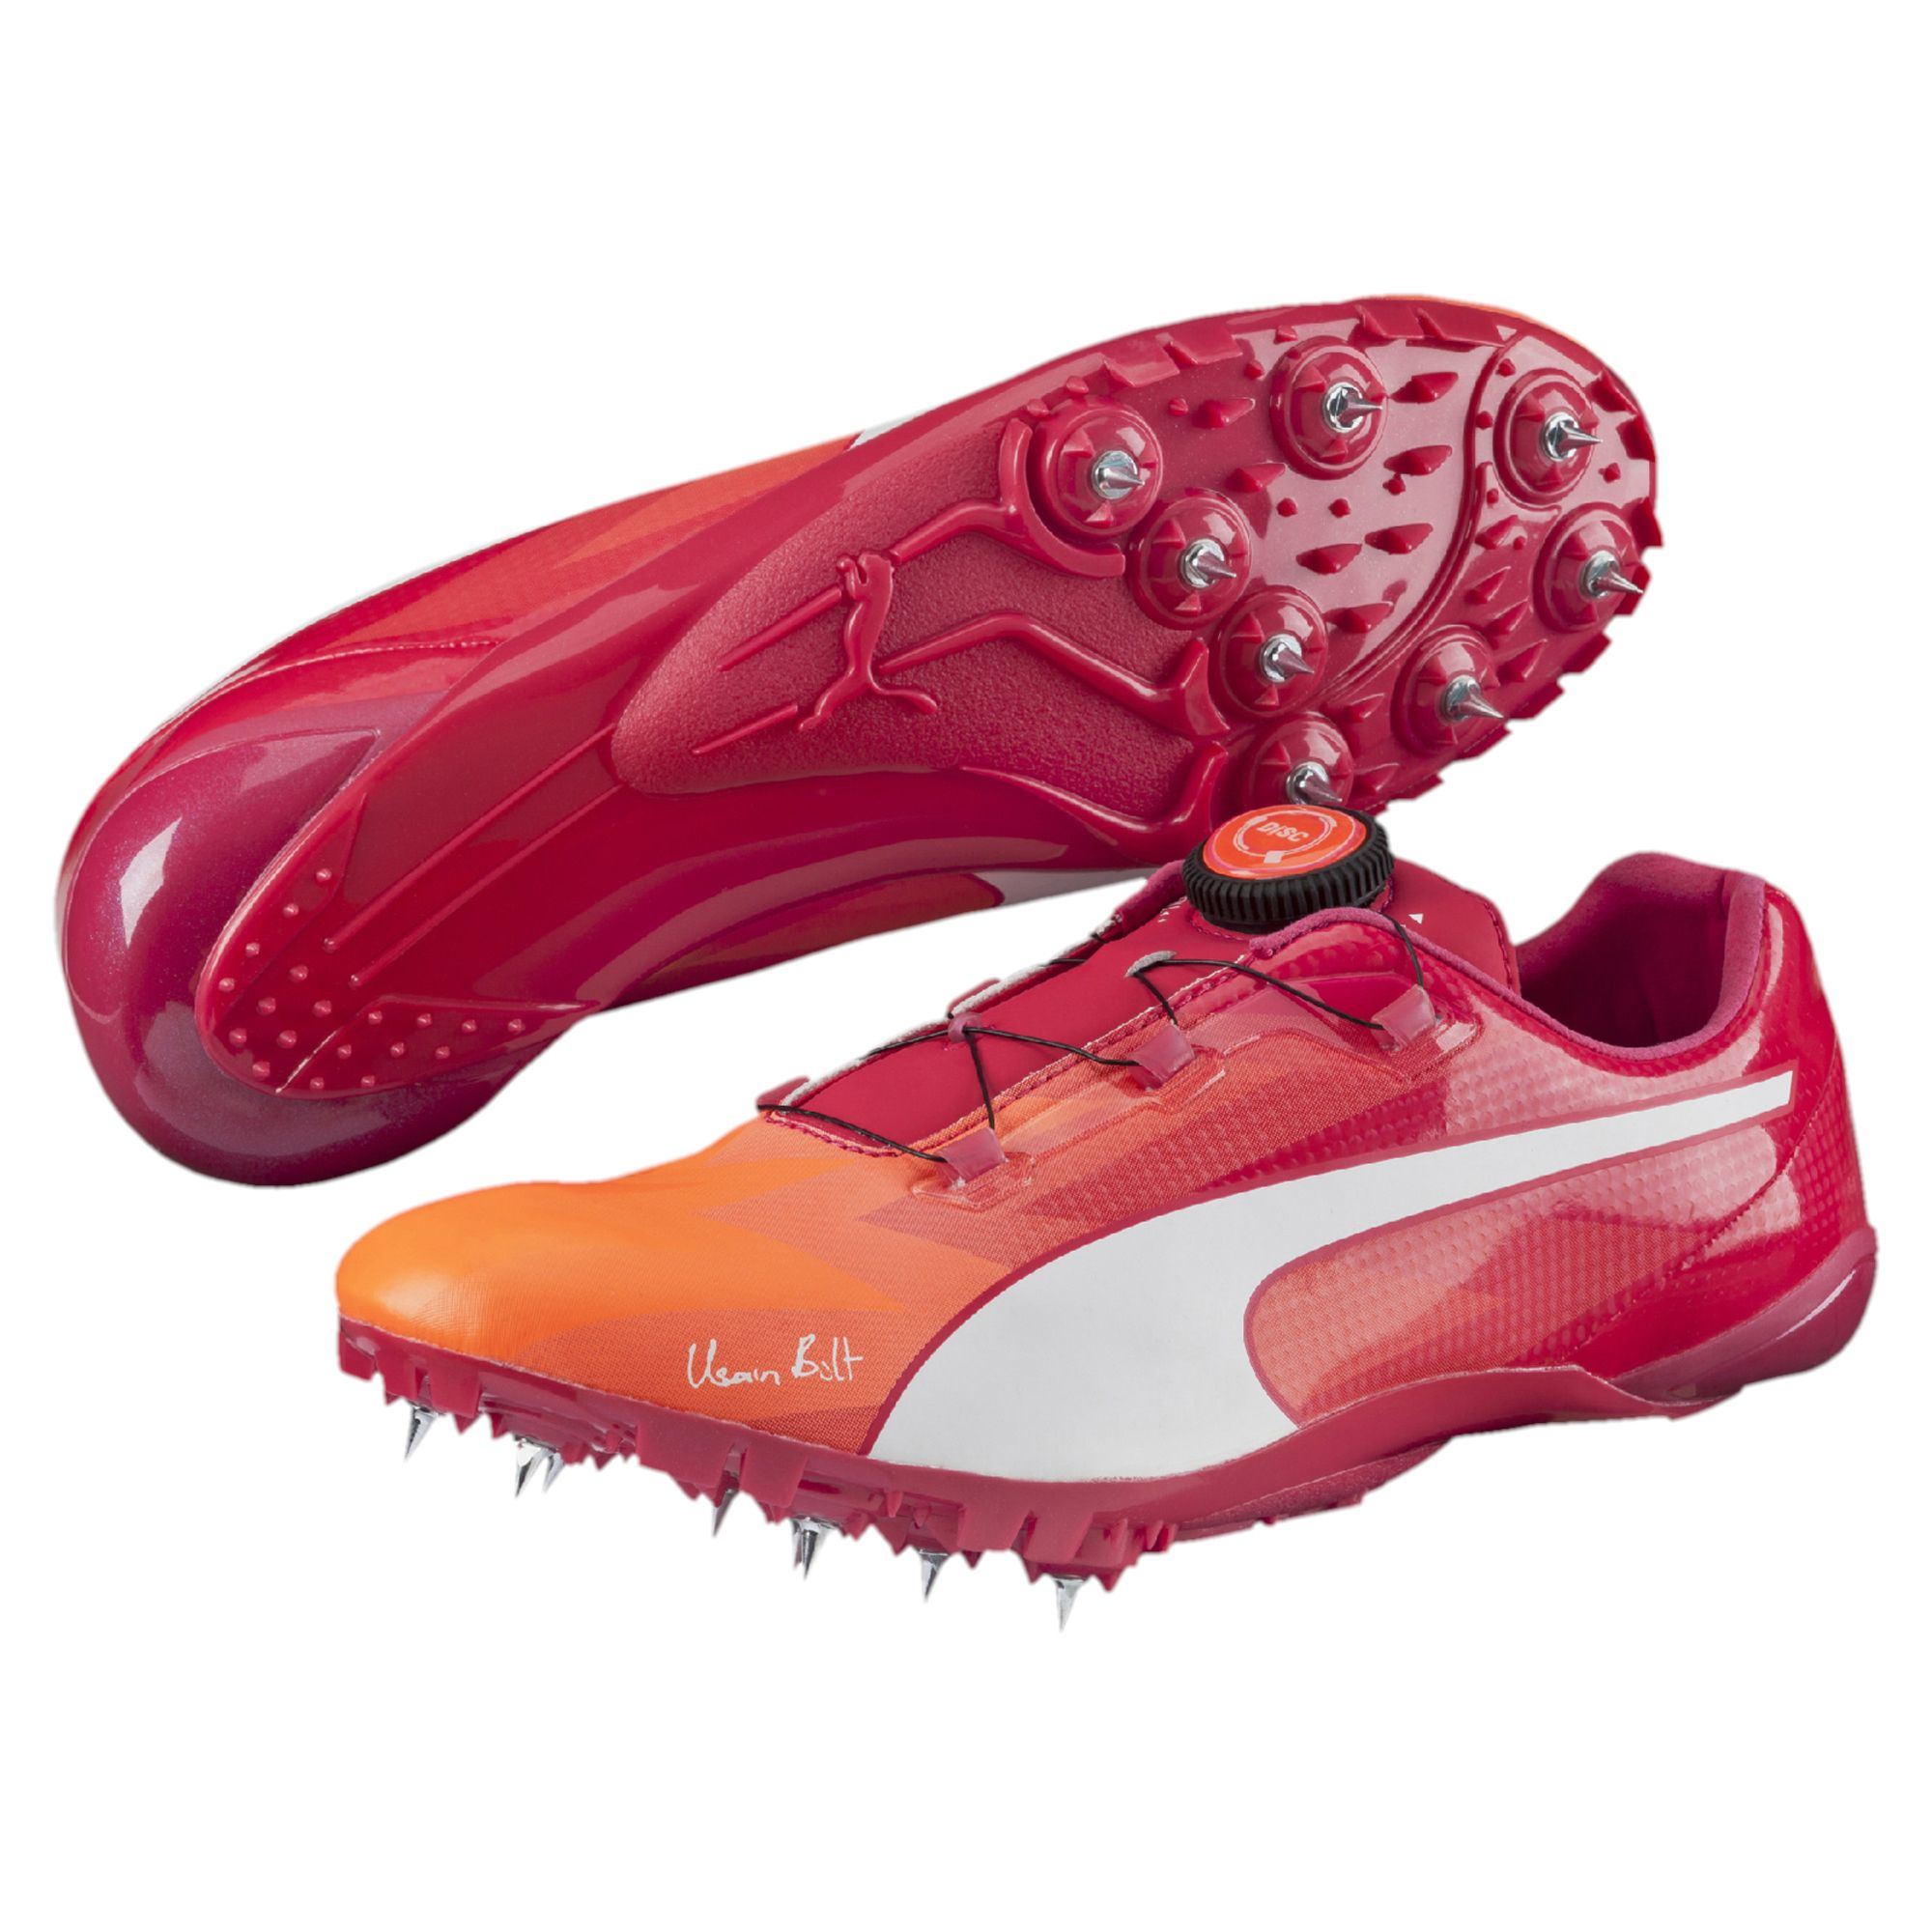 Lyst - PUMA Bolt Evospeed Disc Sprint Track Spikes in Orange for Men dde4c682d5ee